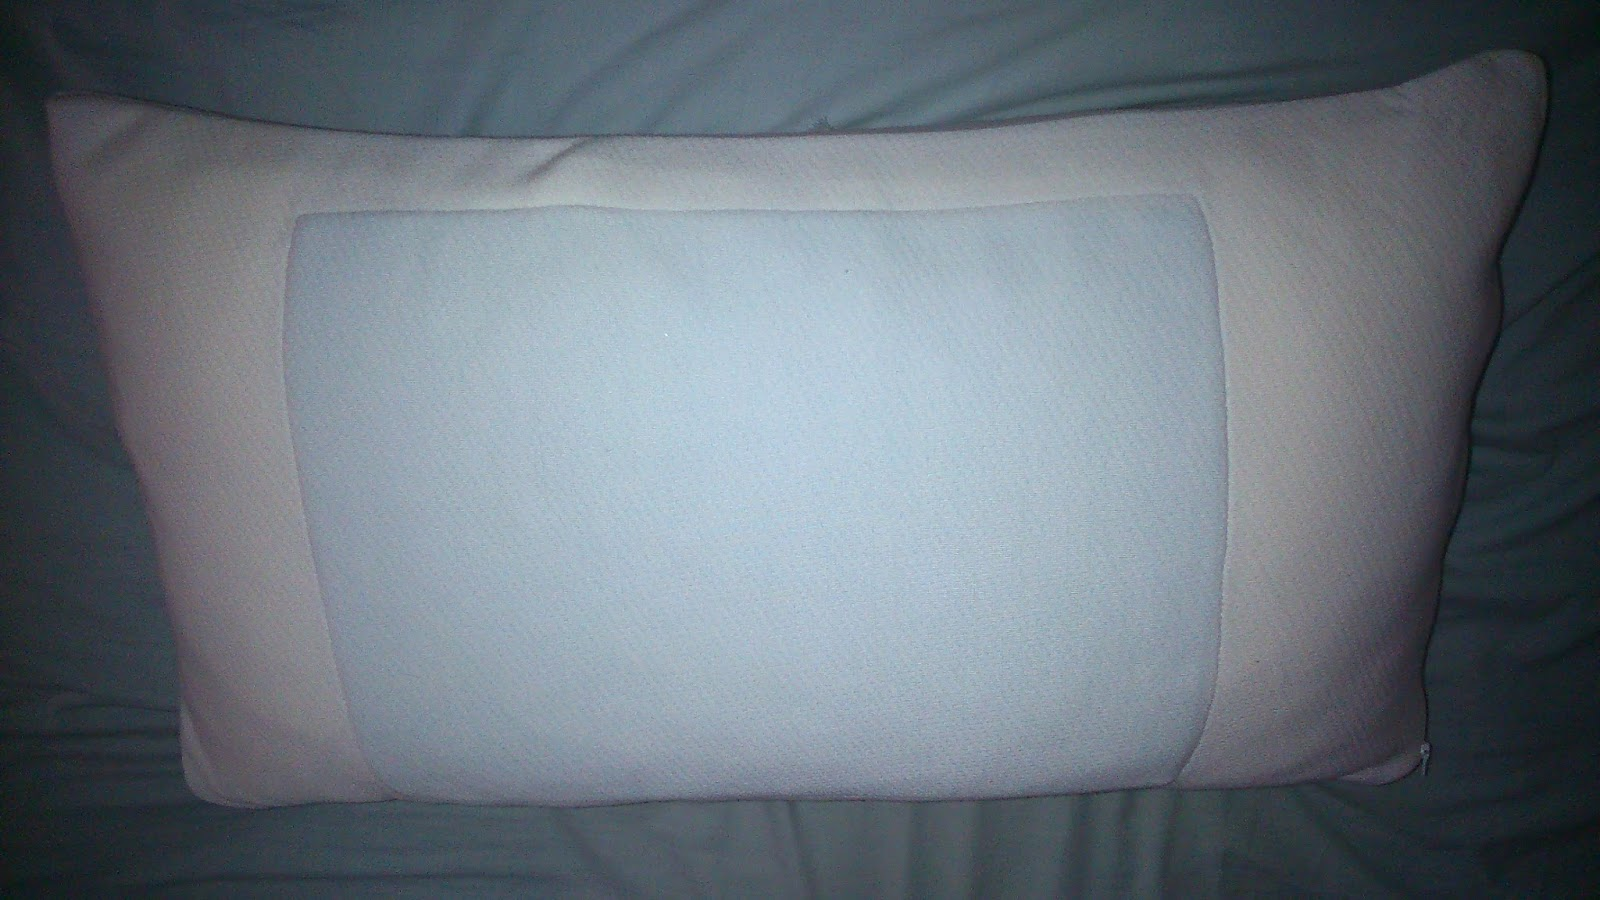 Slumberdown Mem-Gel Pillow Review - My Three and Me